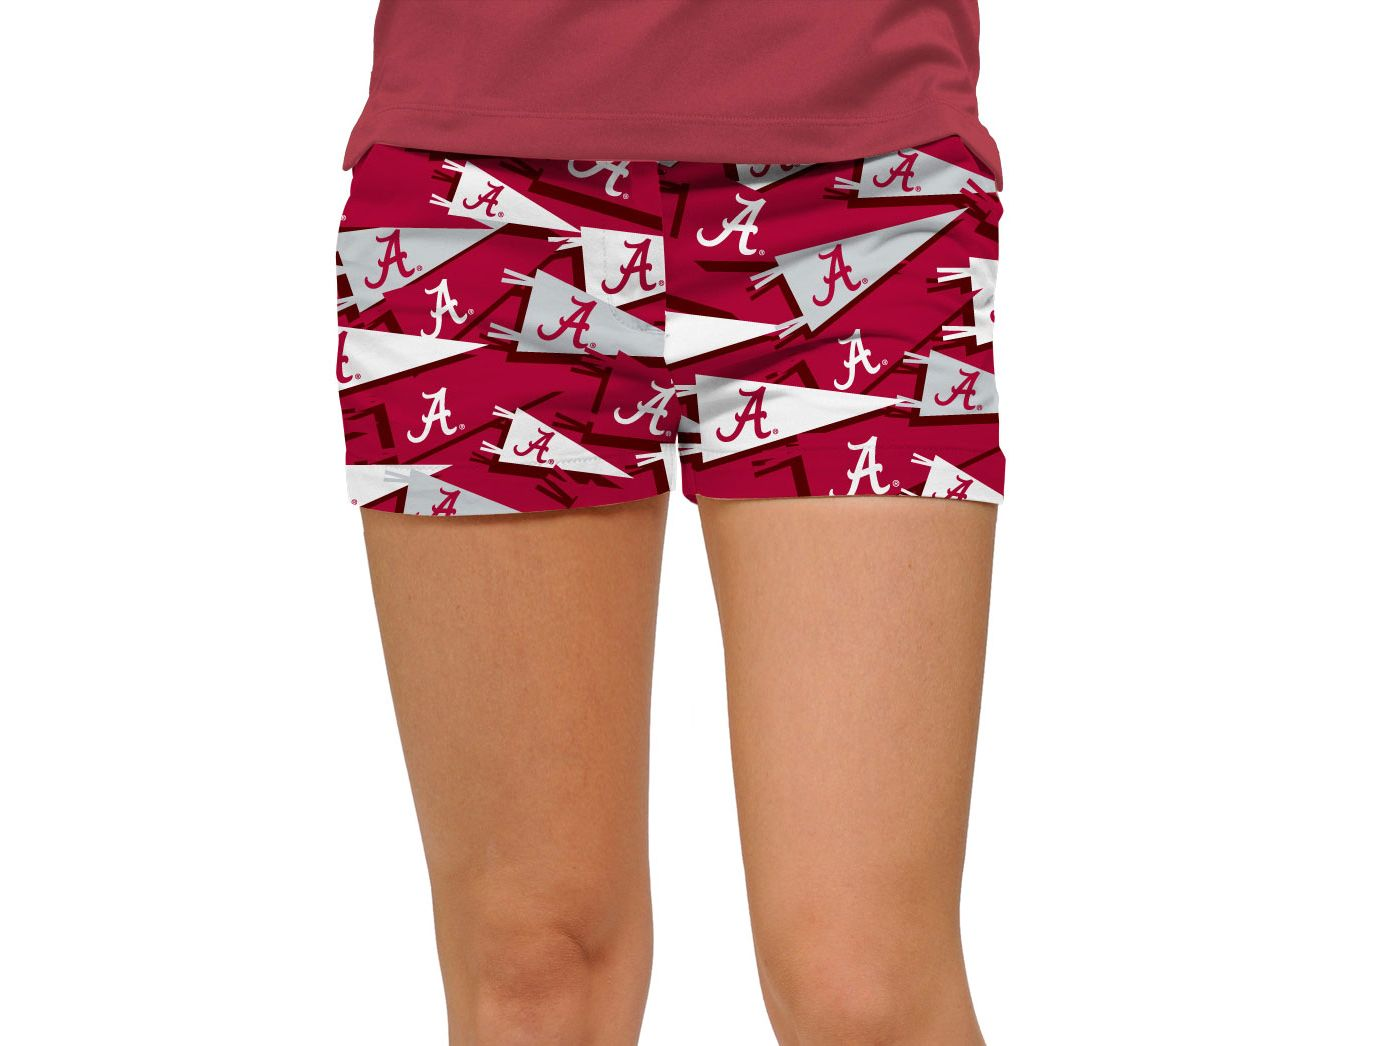 Loudmouth Women's Alabama Crimson Tide 'Roll Tide' Mini Golf Shorts